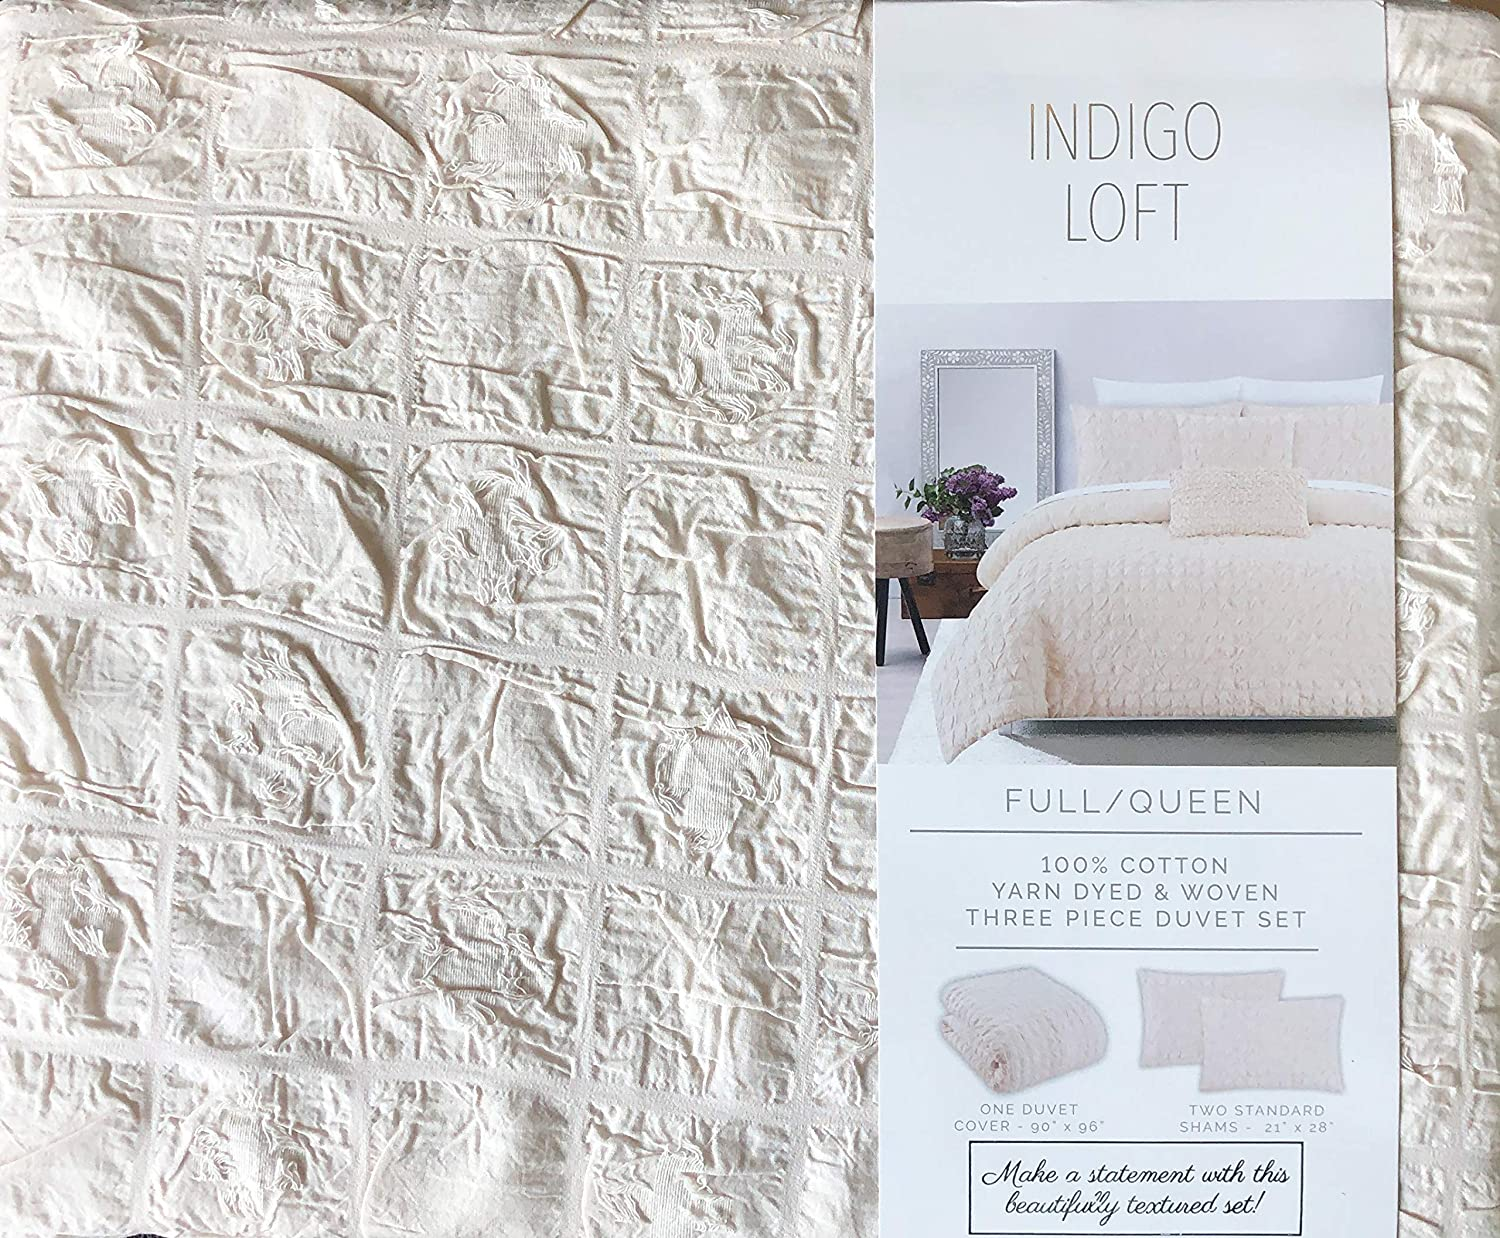 Indigo Loft Solid Cream Light Tan 3pc Duvet Set Textured Ruched Squares With Tufts Farmhouse Pattern 100 Cotton Comforter Quilt Cover With Shams Square Bubbles Eyelash Full Queen Amazon Ca Home Kitchen